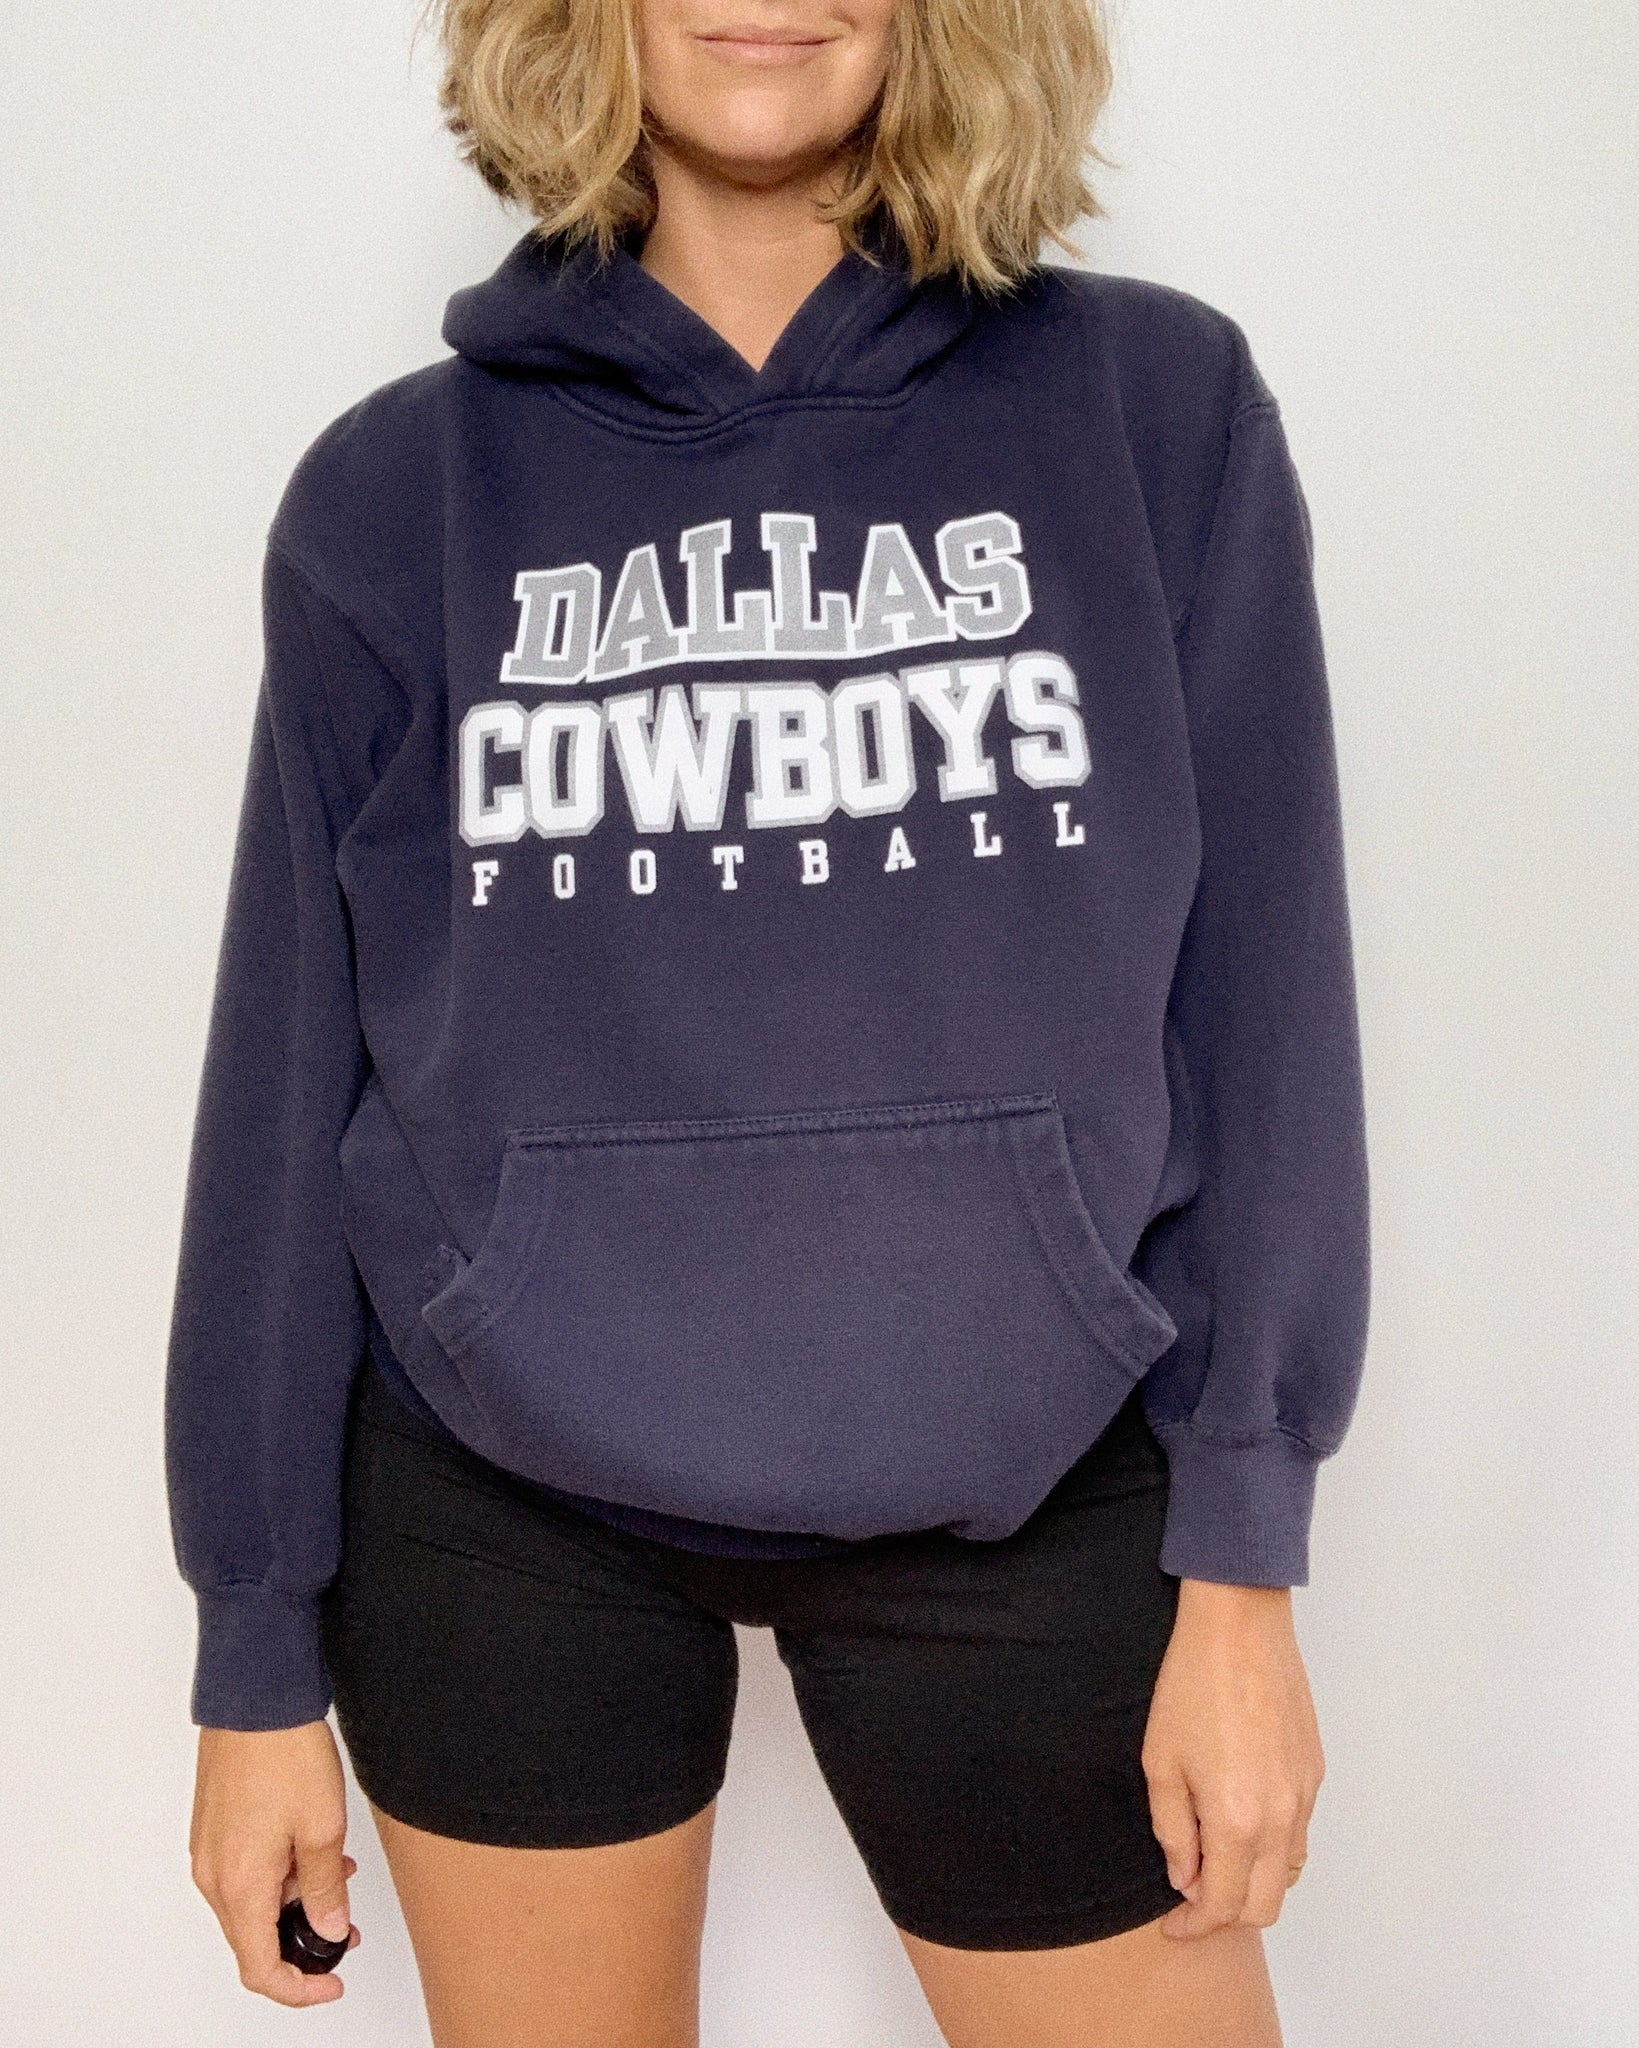 GO DALLAS COWBOYS / SMALL